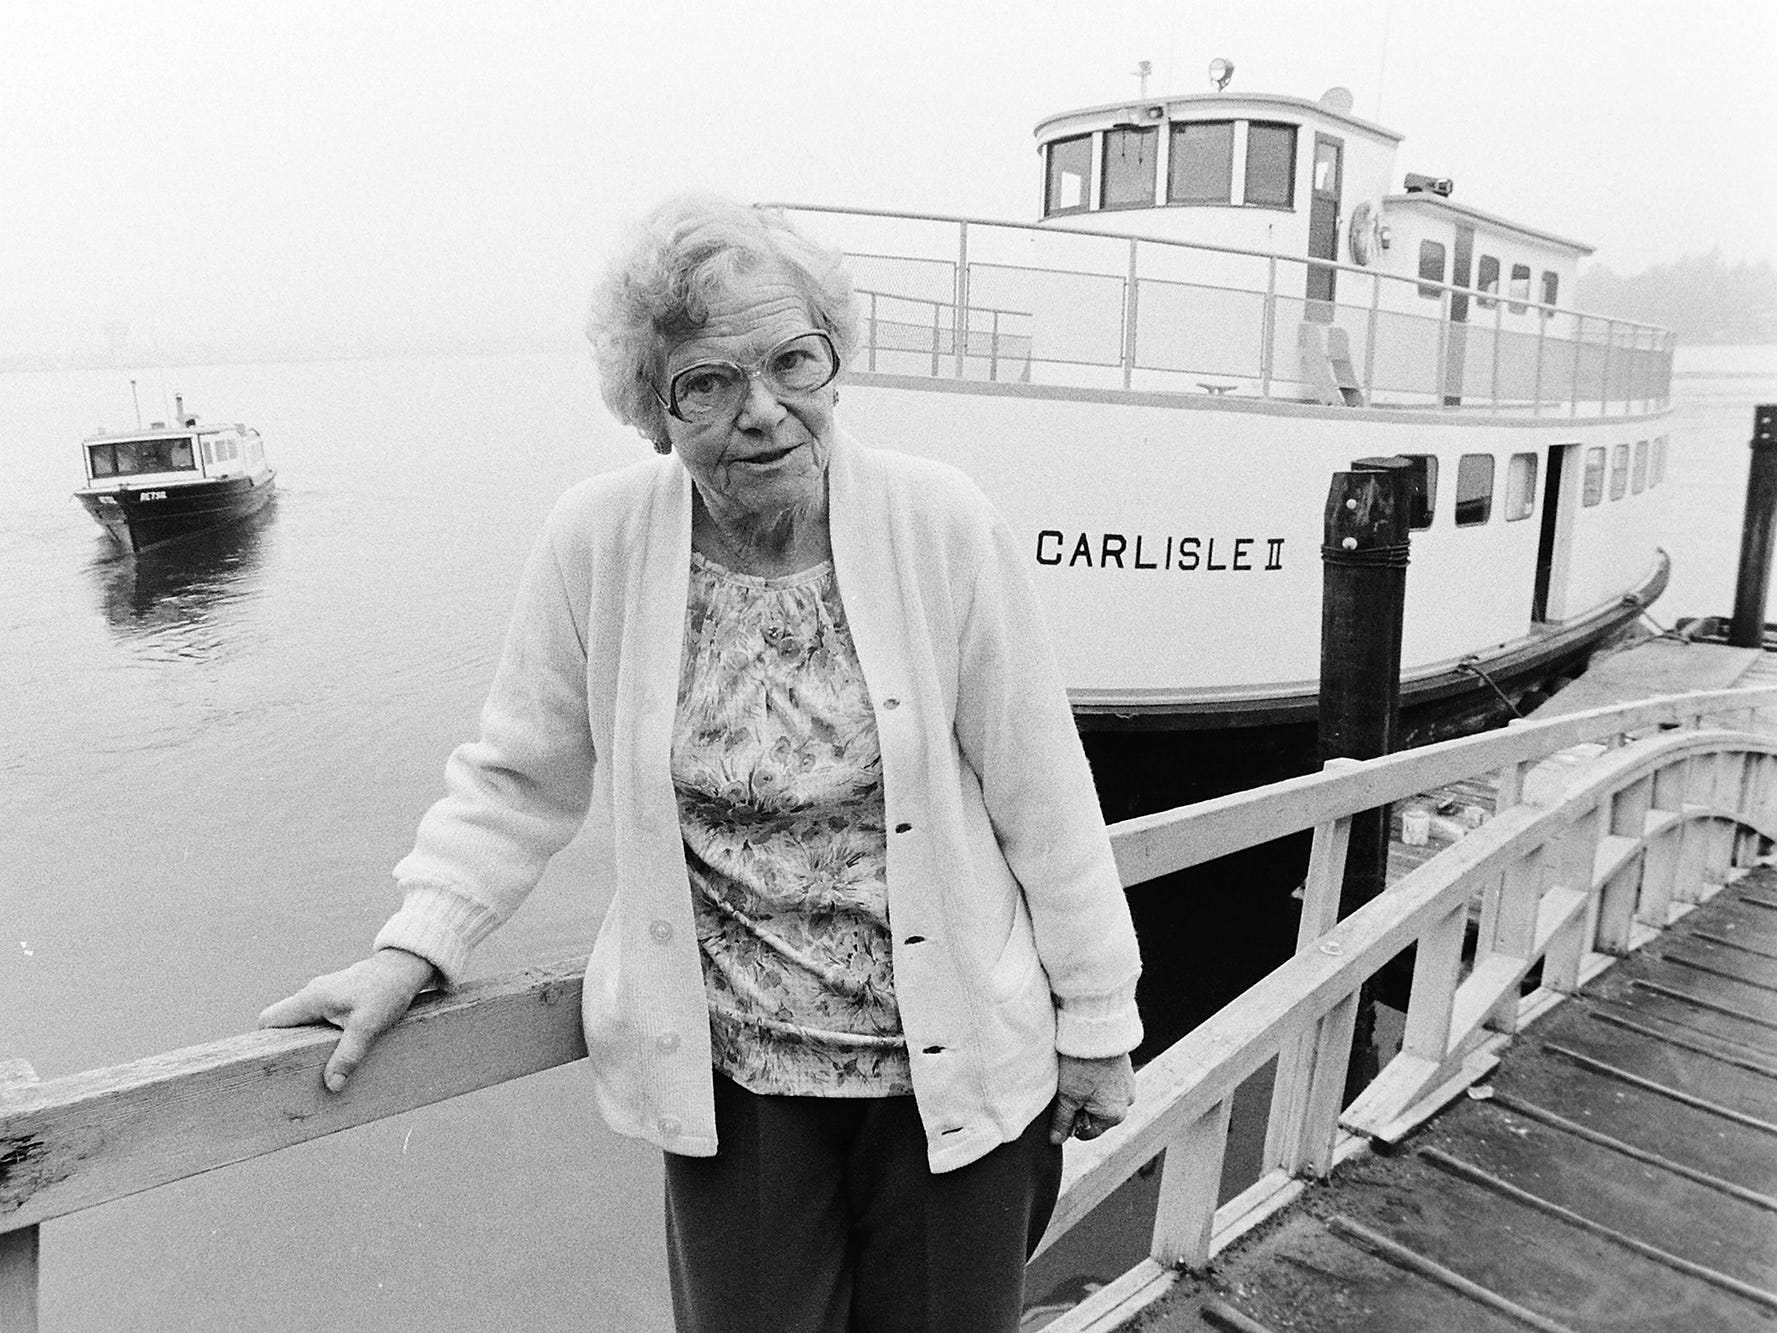 01/03/84